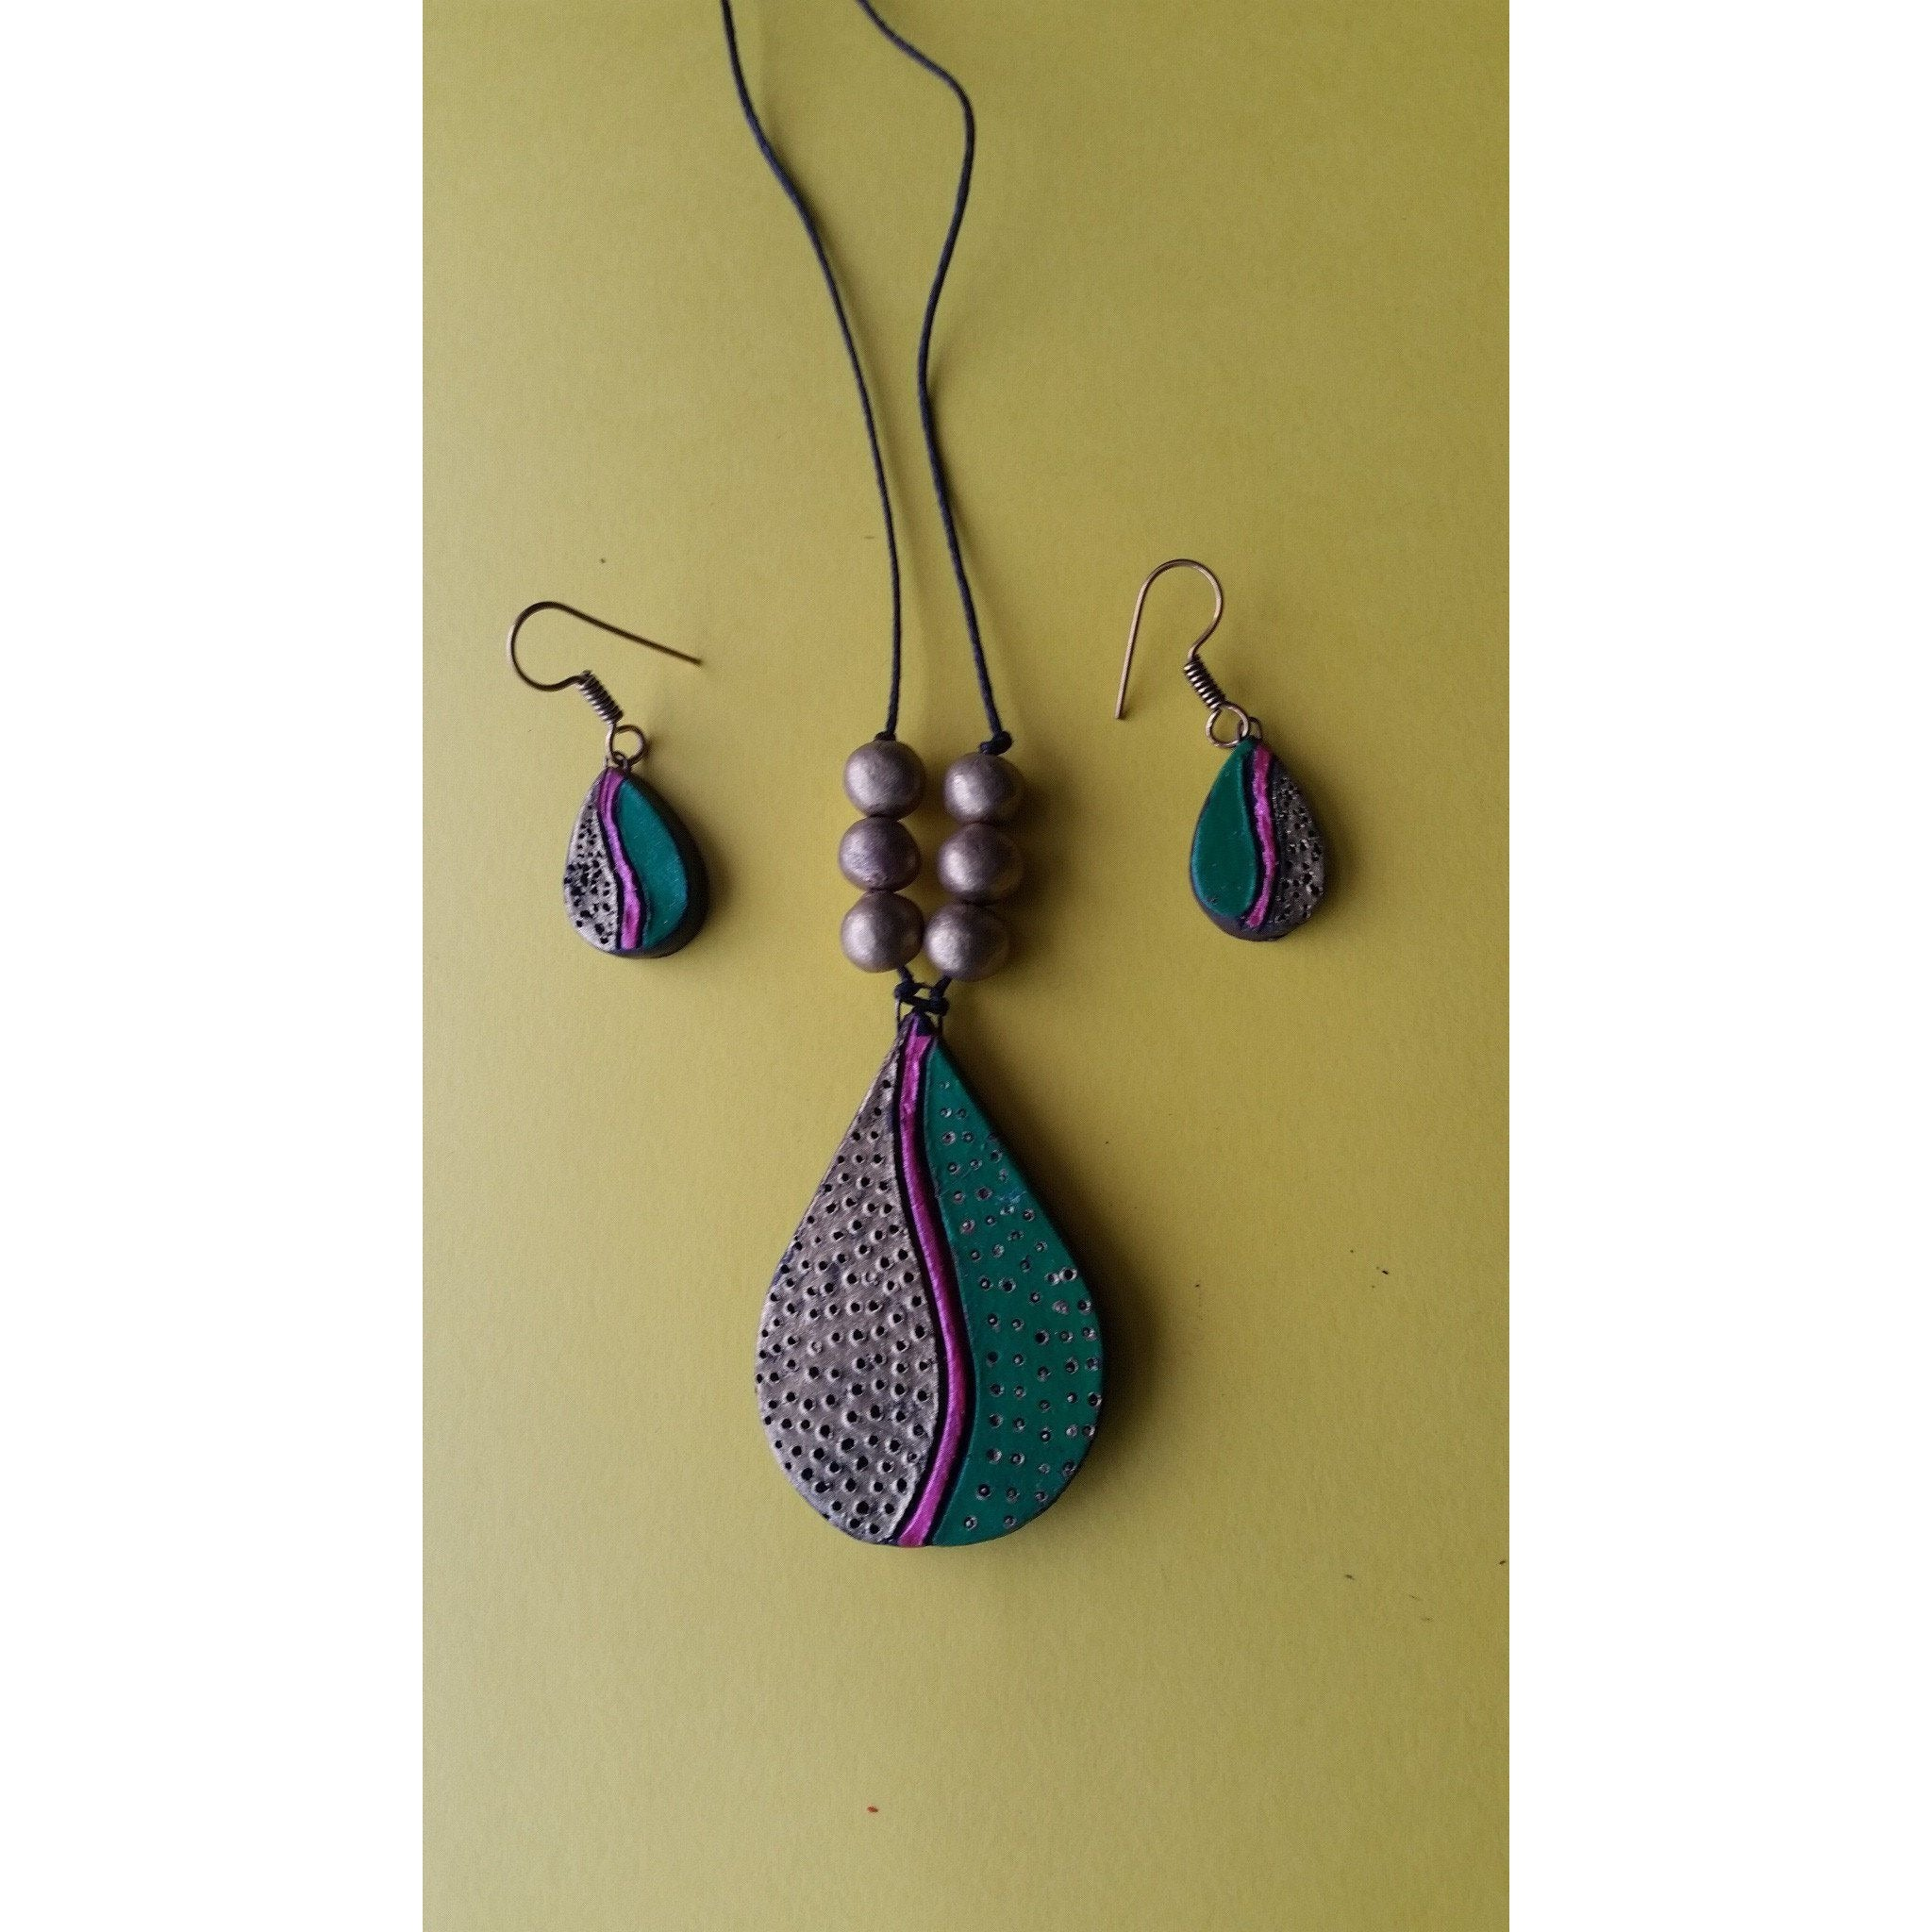 Handmade Terracotta Pendant Chain Set Green and Red